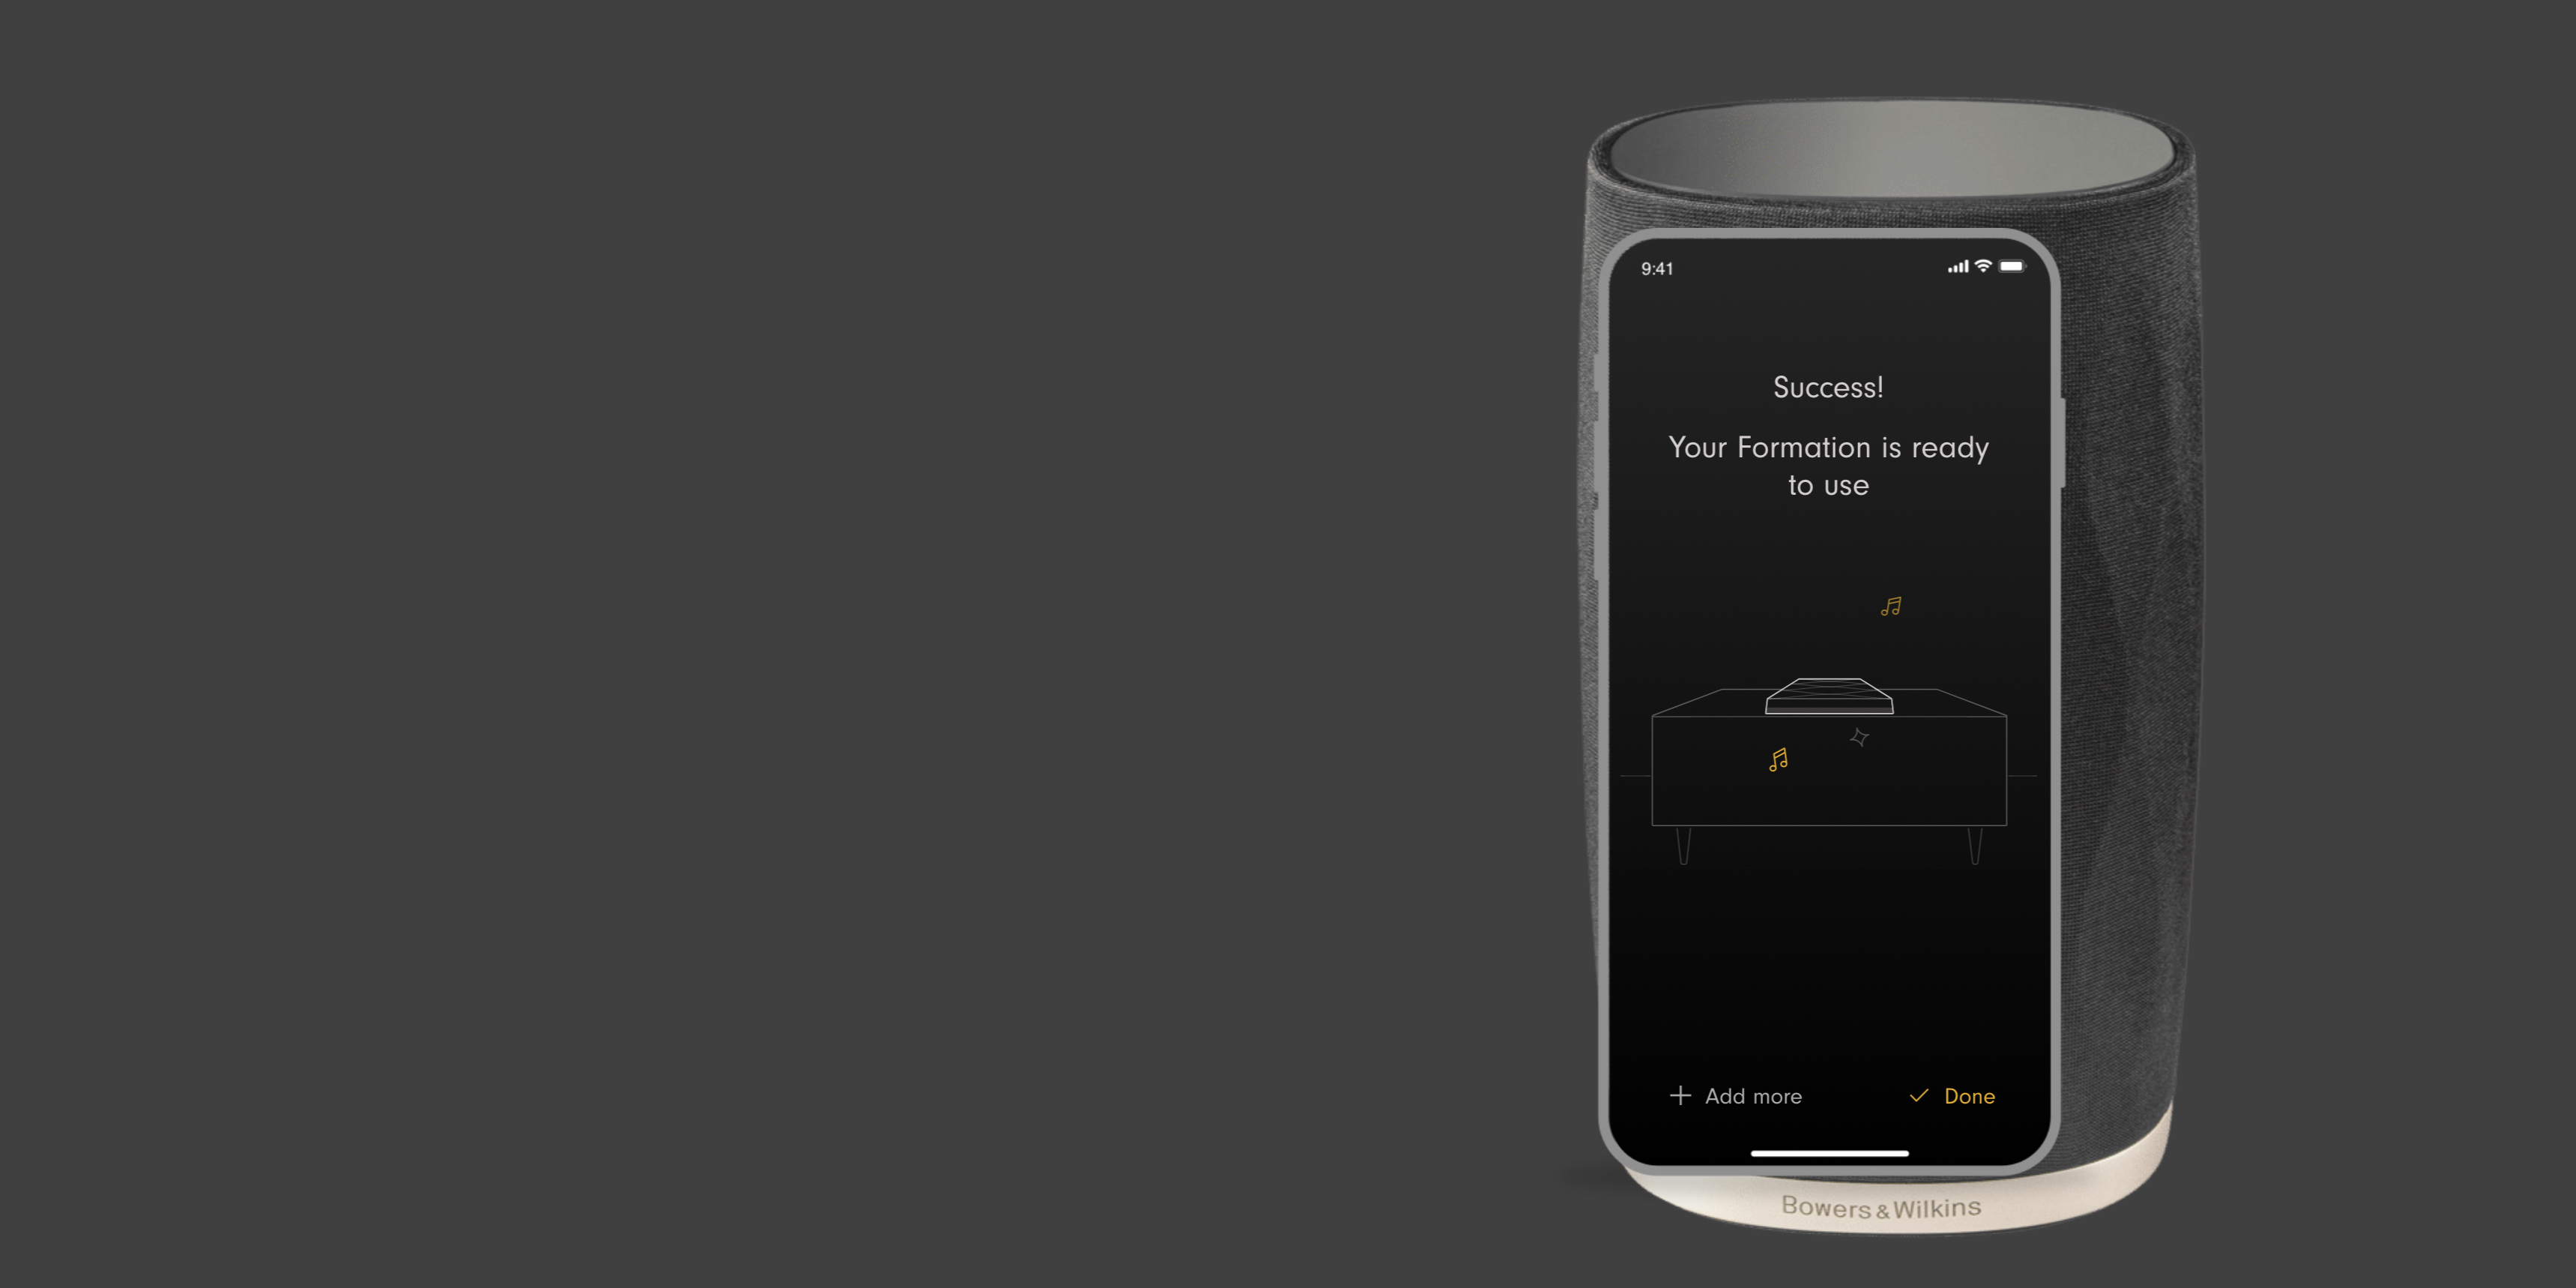 bowers-wilkins-formation app